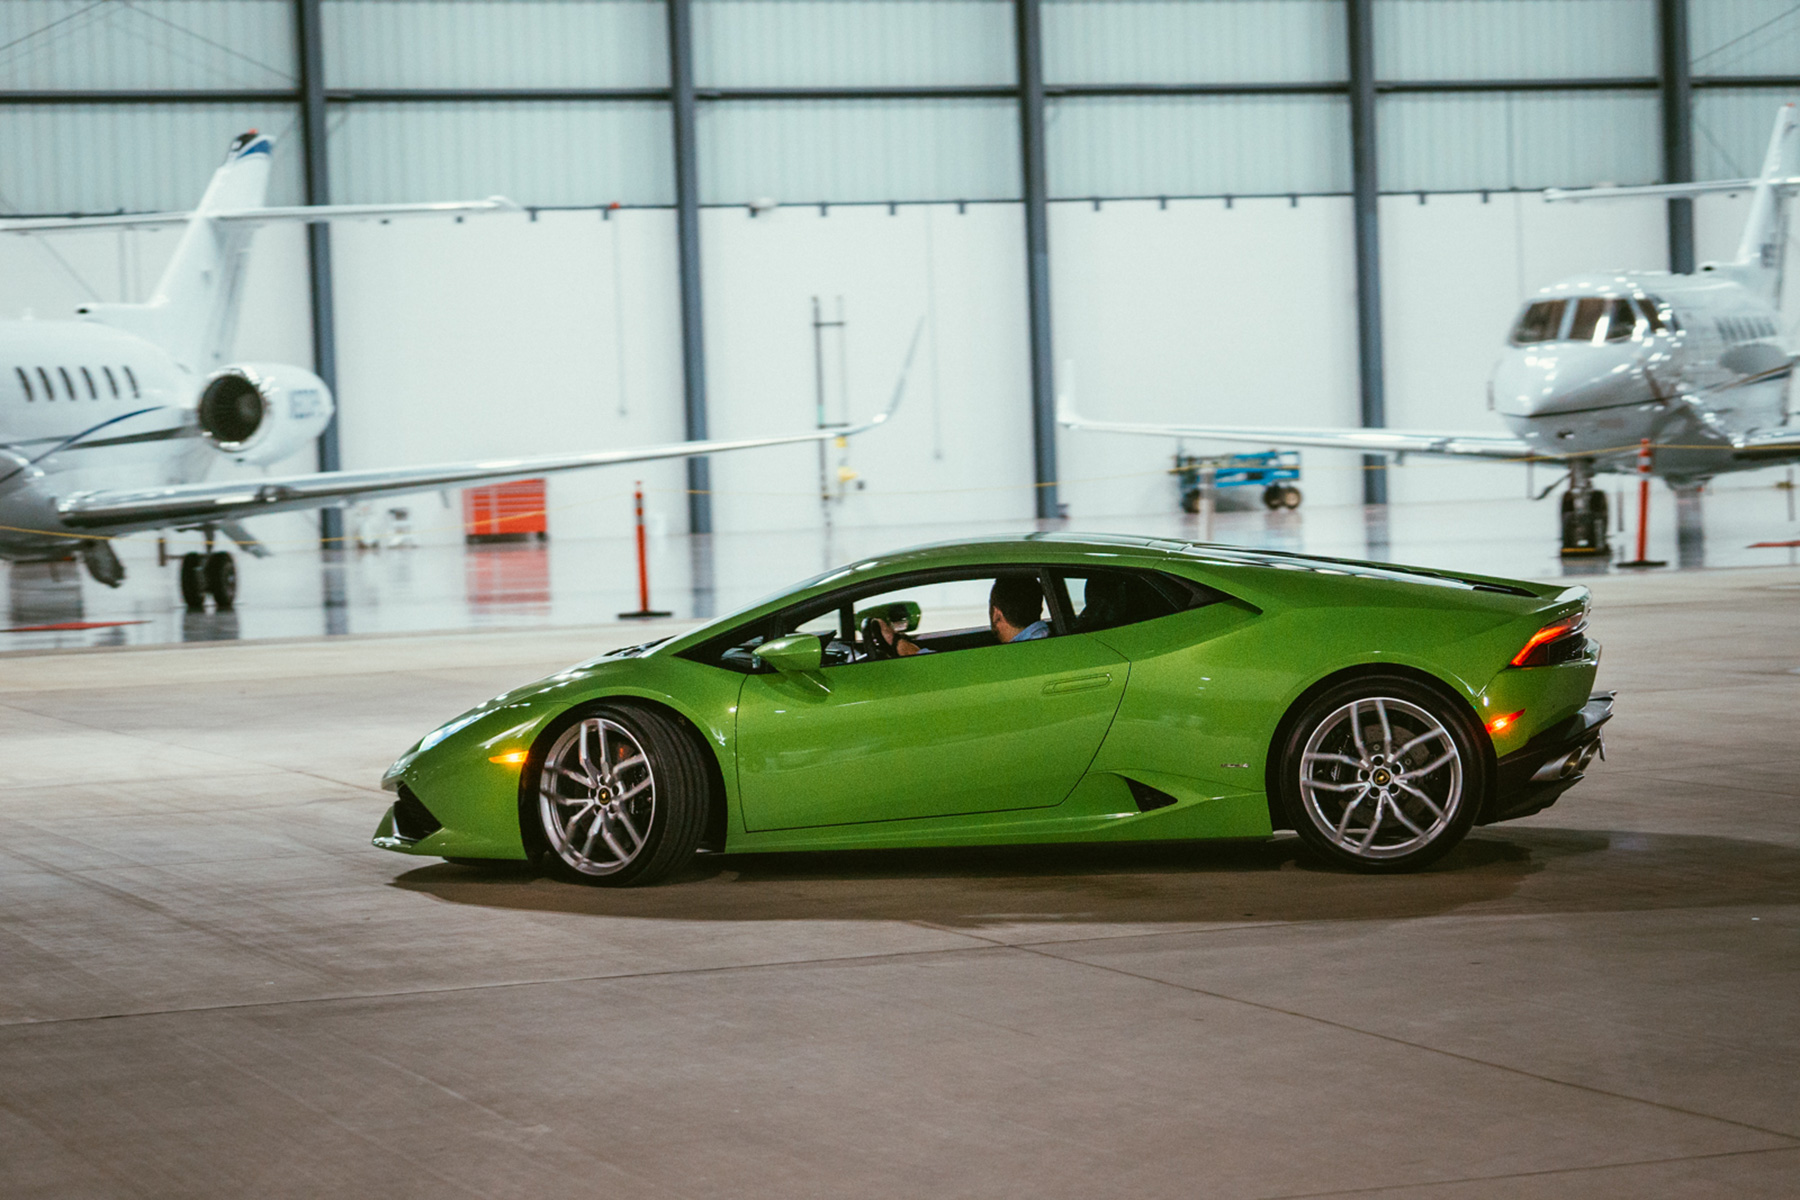 If you don't have a price limit for your gift this Christmas, then a luxury Italian car it is! The Lamborghini Huracan was recently unveiled at Galaxy FBO and we are hooked.  Check out this video from the exclusive event and from everyone at Galaxy FBO we hope you have an amazing holiday season and fly safe. http://vimeo.com/111999151